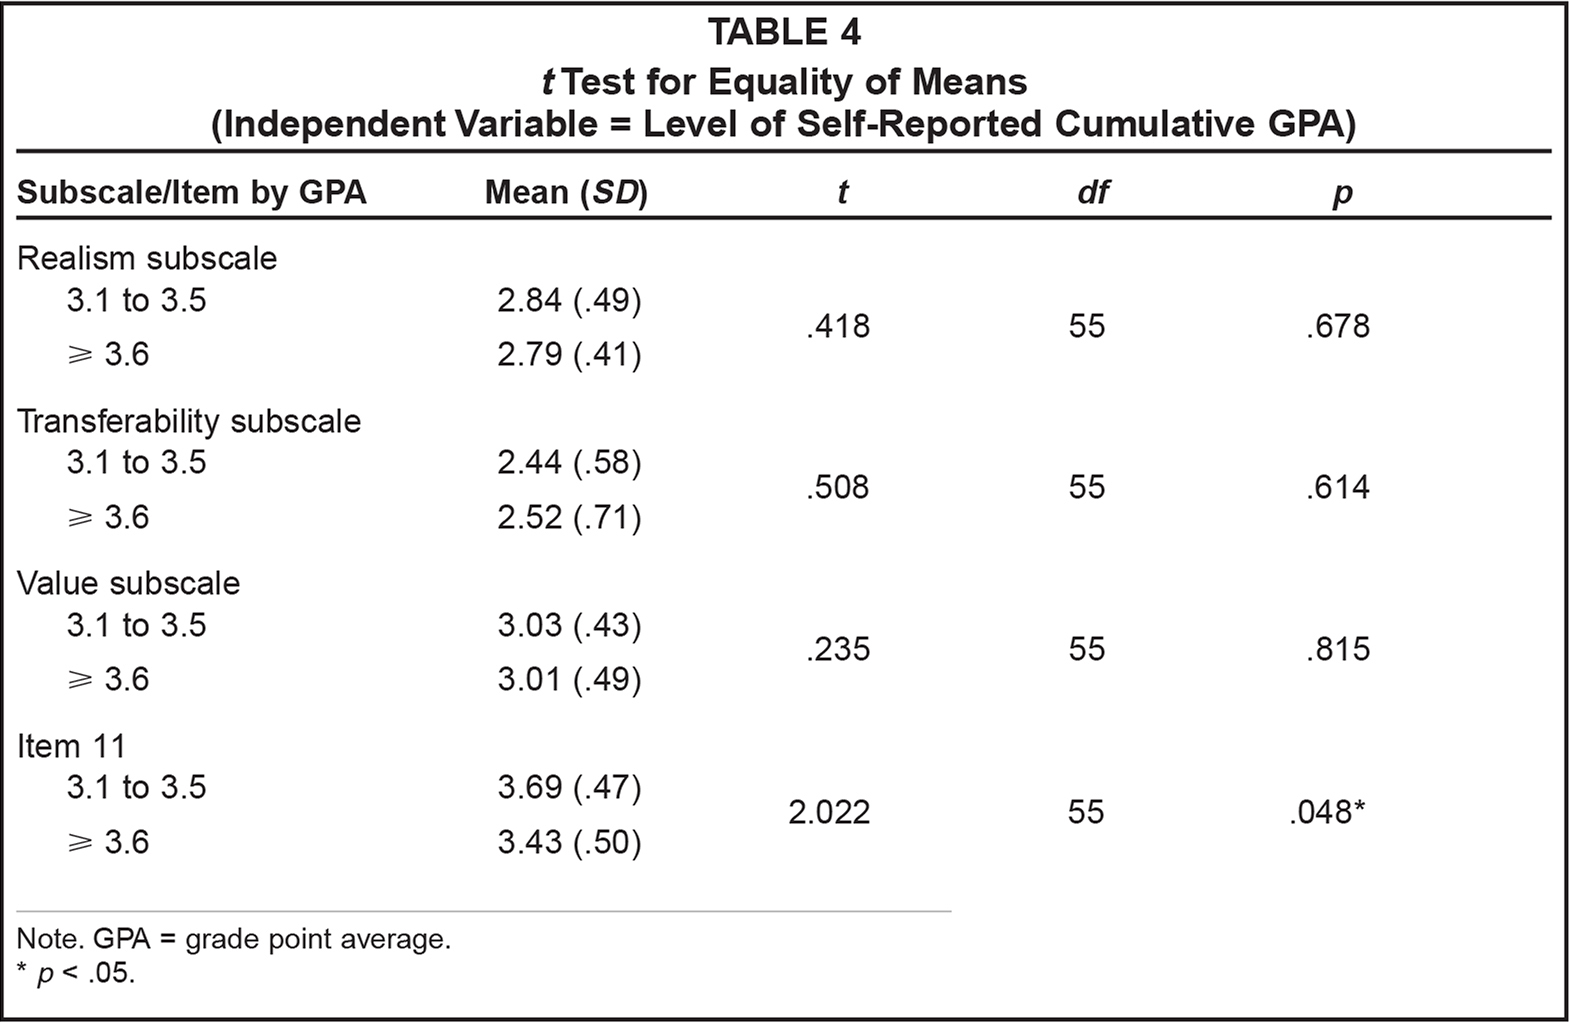 t Test for Equality of Means (Independent Variable = Level of Self-Reported Cumulative GPA)